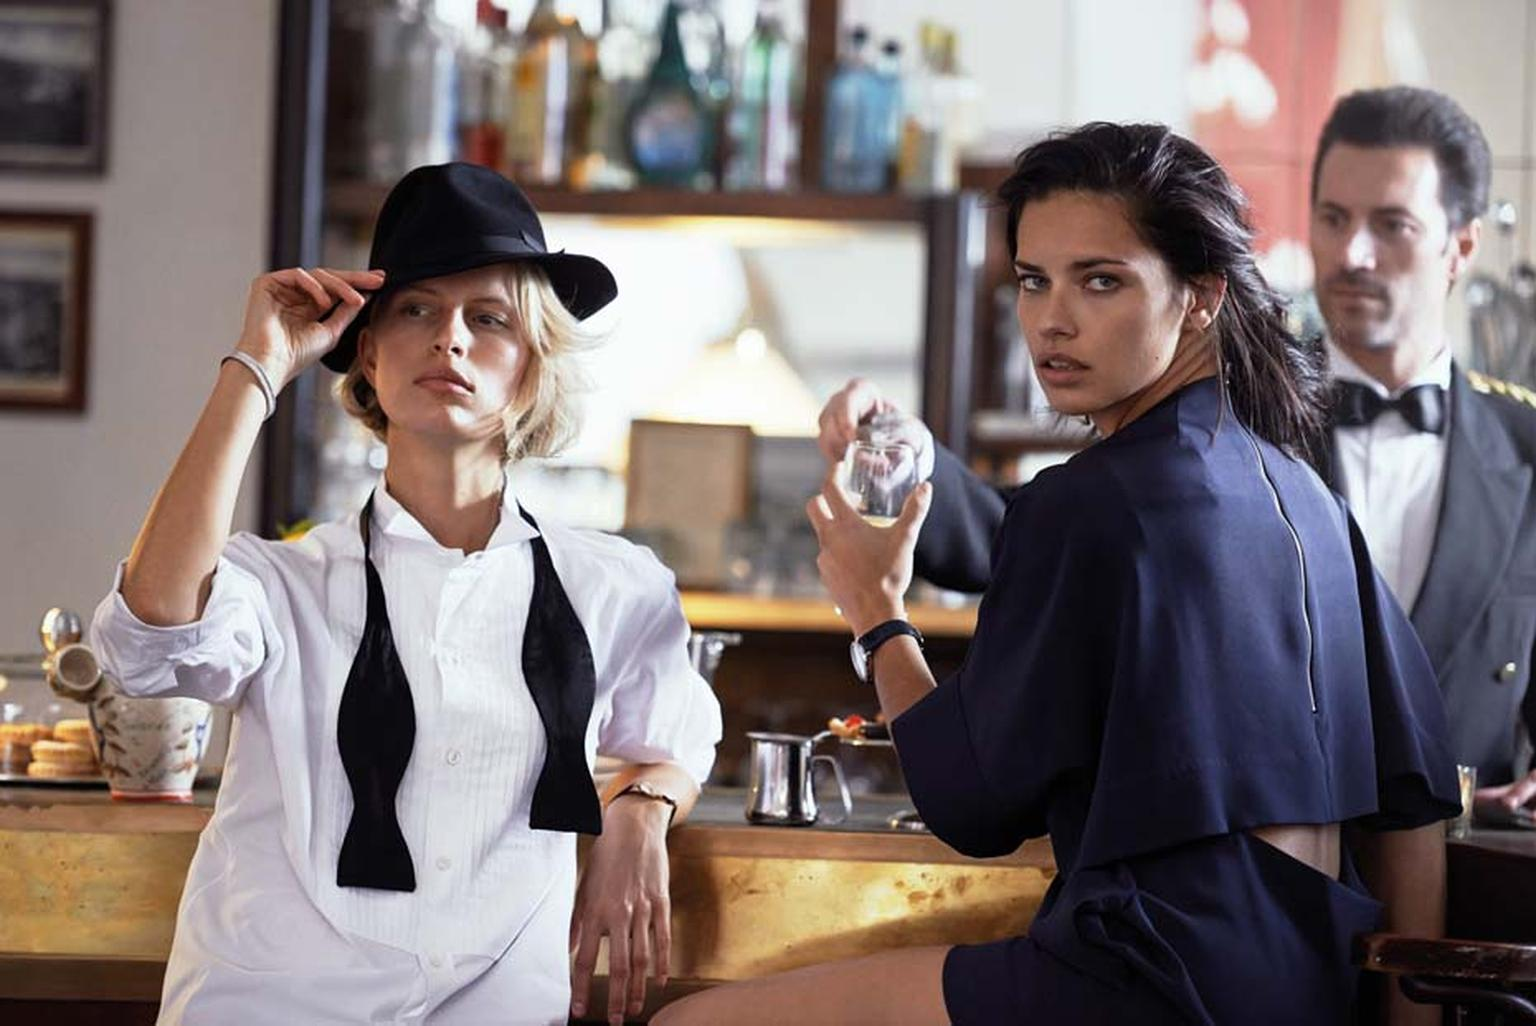 Casually sporting IWC's latest Portofino watches, Karolina Kurkova and Adriana Lima bring even more beauty to the Mediterranean town of Portofino.